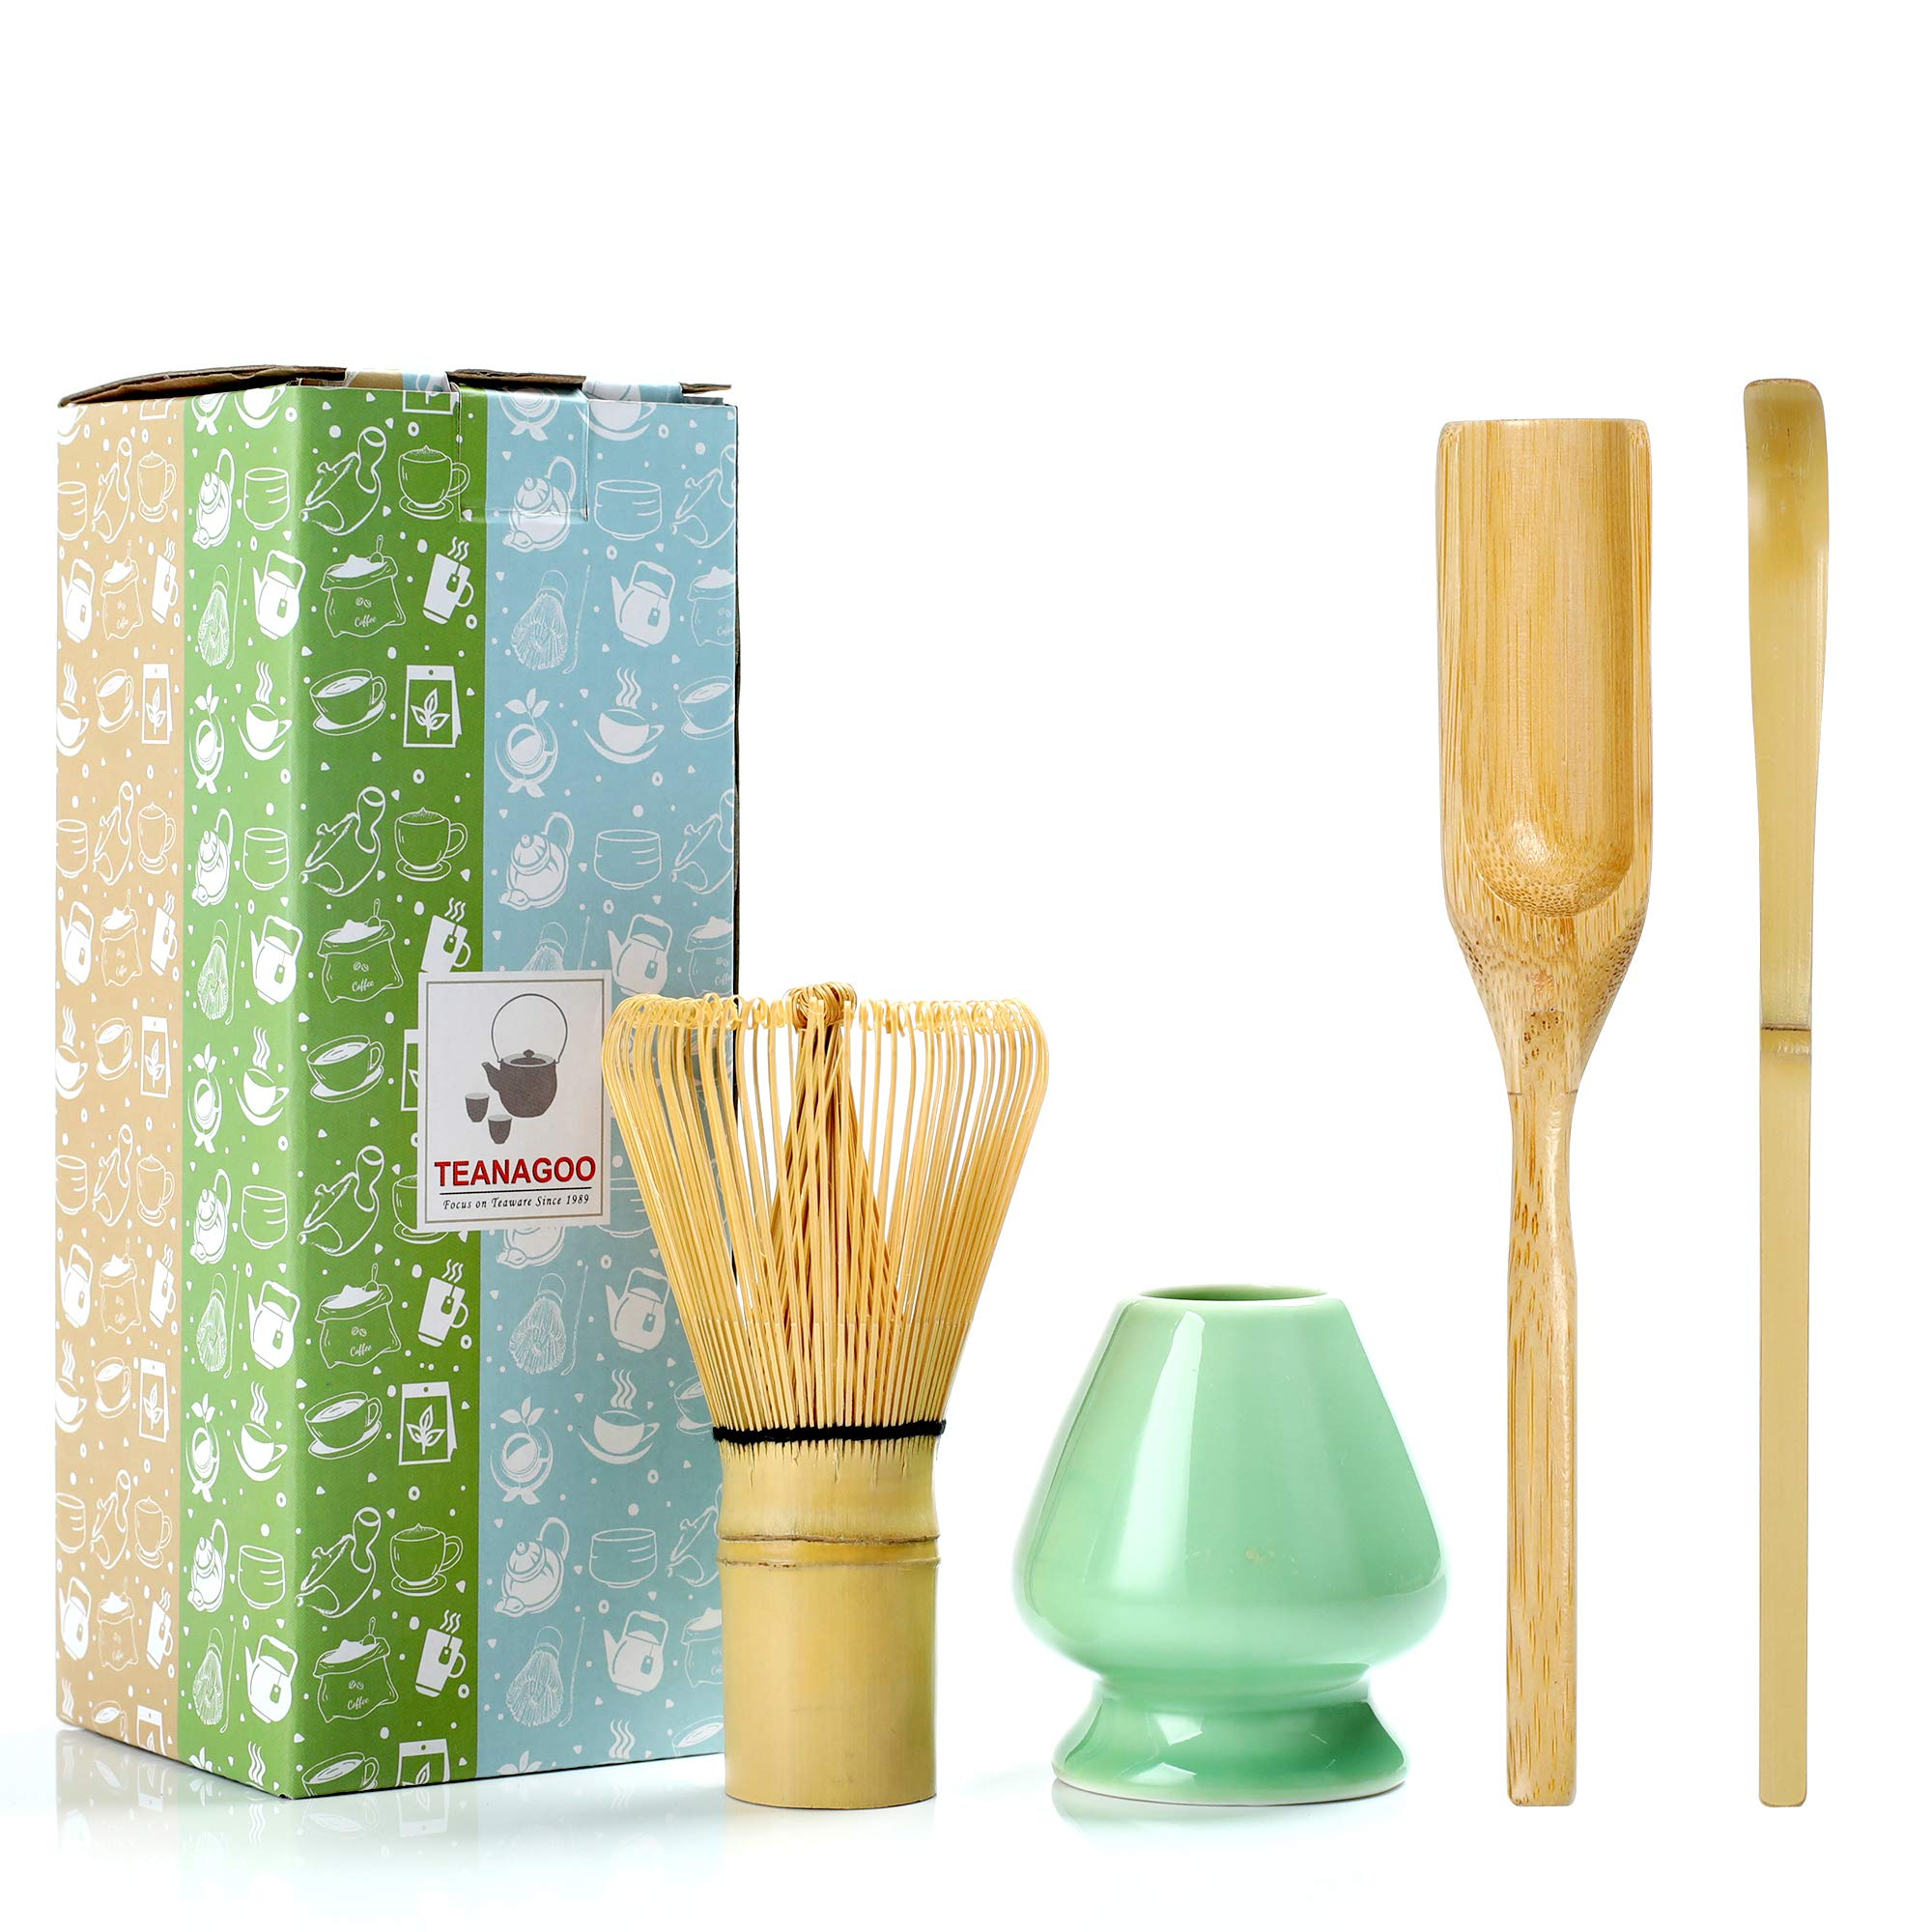 TEANAGOO MA-01 Japanese Matcha Ceremony Accessory, Matcha Whisk (Chasen), Traditional Scoop (Chashaku), Tea Spoon, Whisk Holder, The Perfect Set to Prepare a Traditional Cup of Matcha.